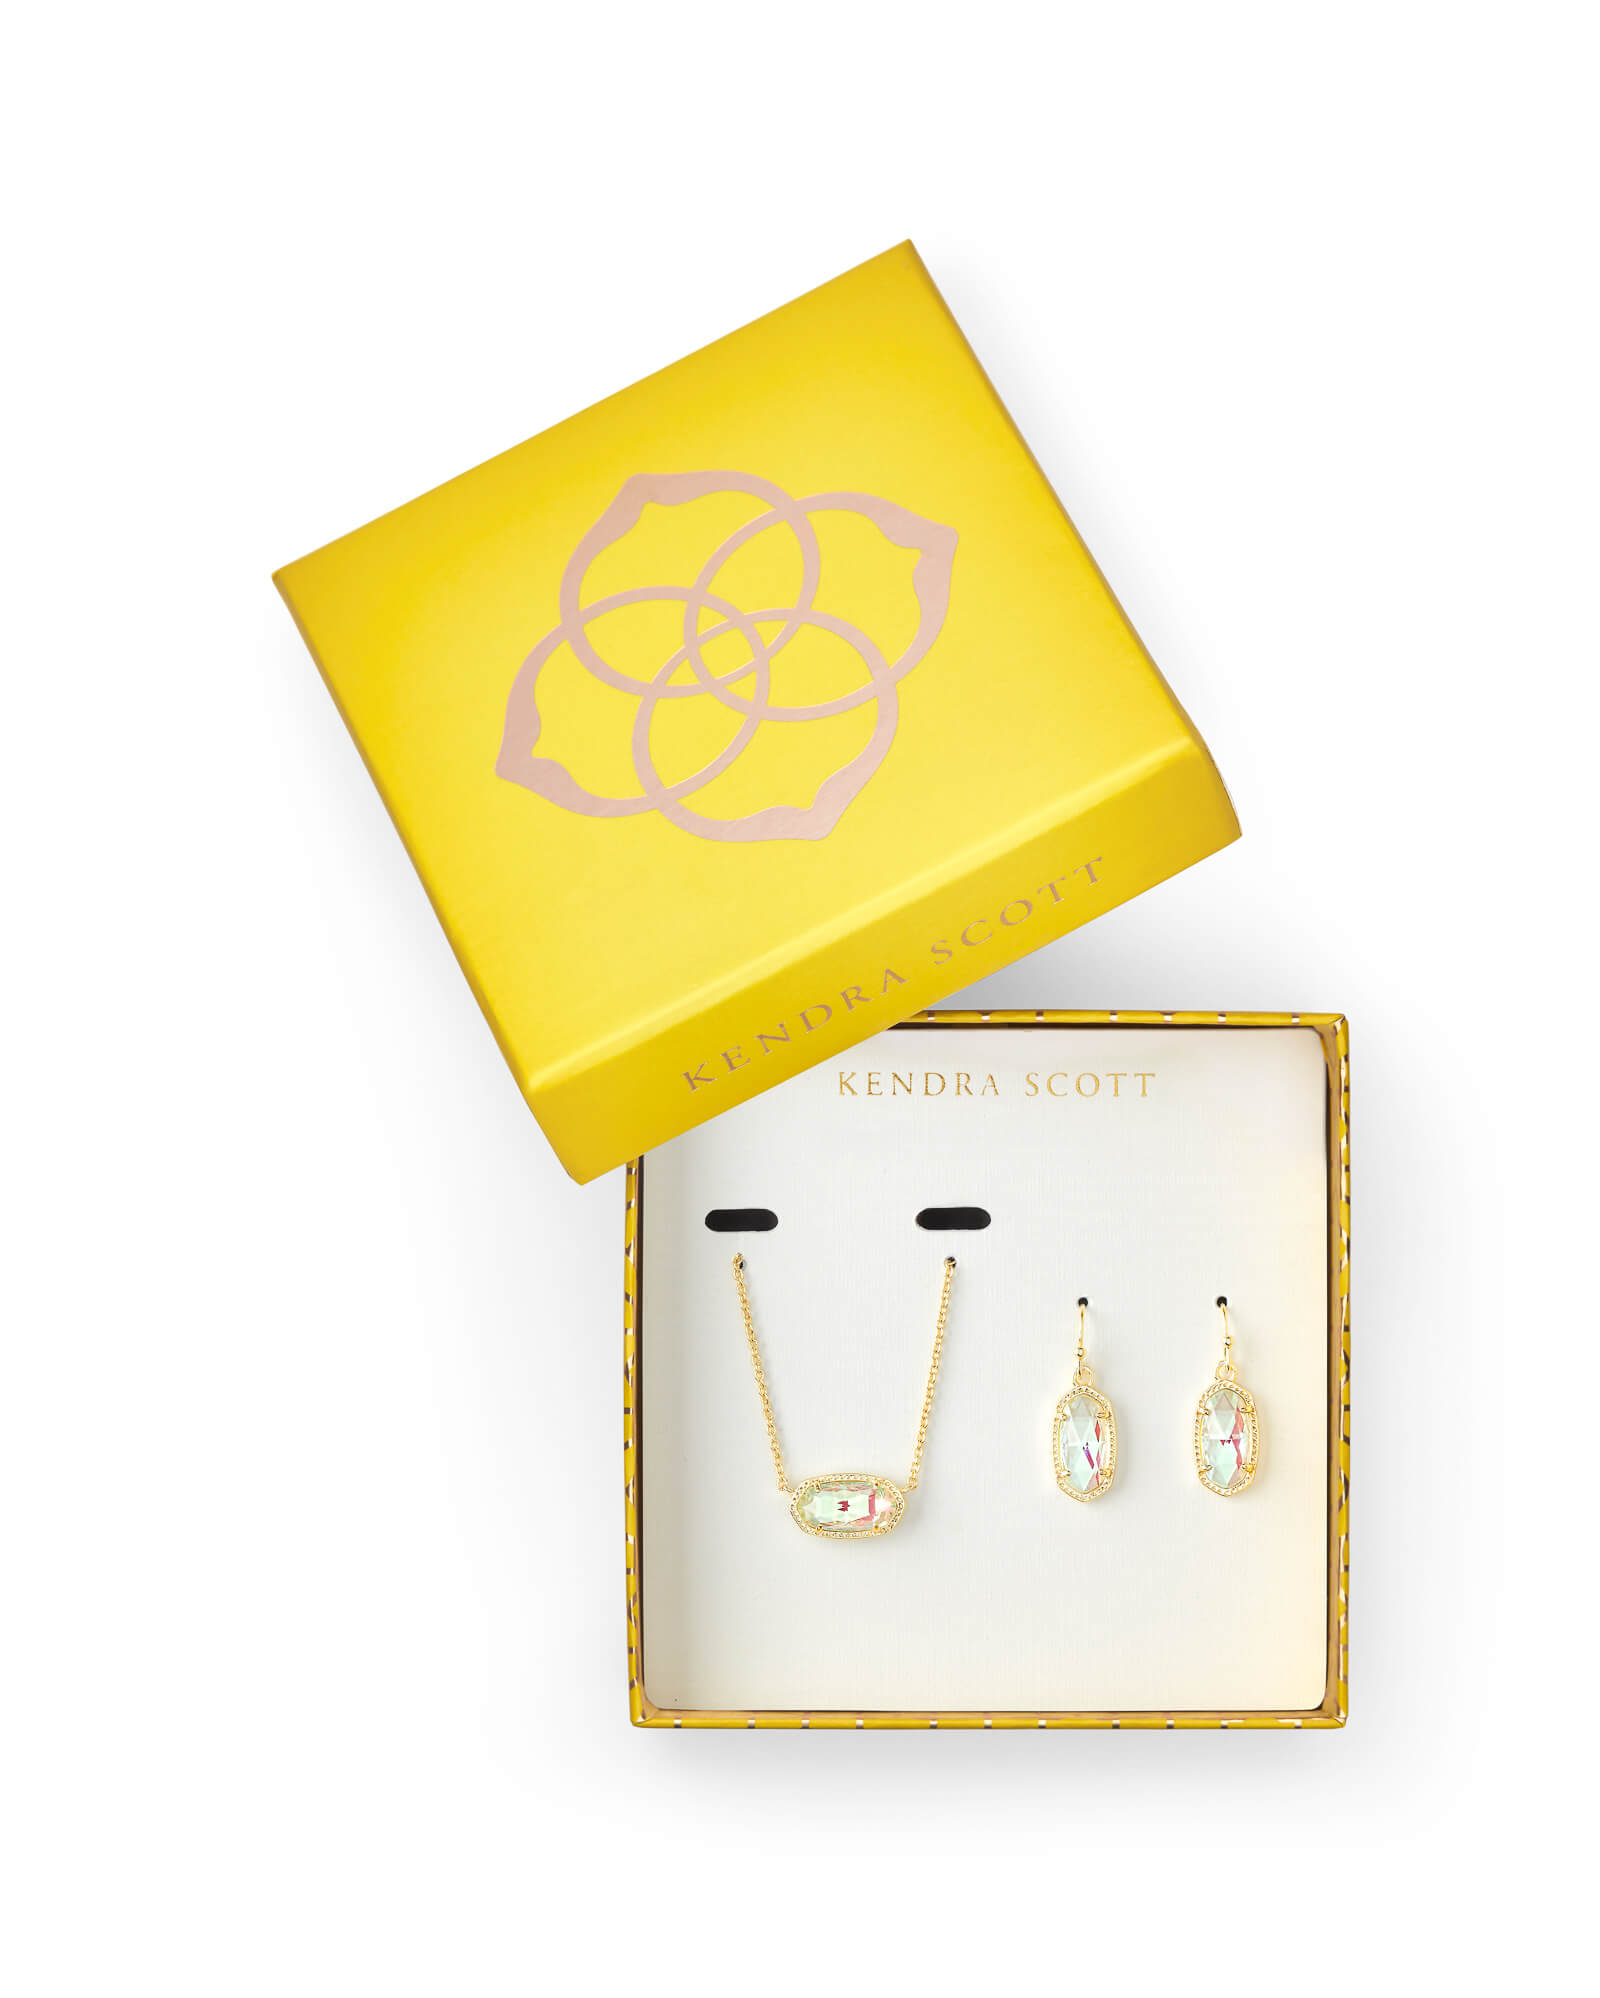 kendra-scott-elisa-necklace-lee-earring-gift-set-gold-clear-dichroic-glass-01-lg.jpg